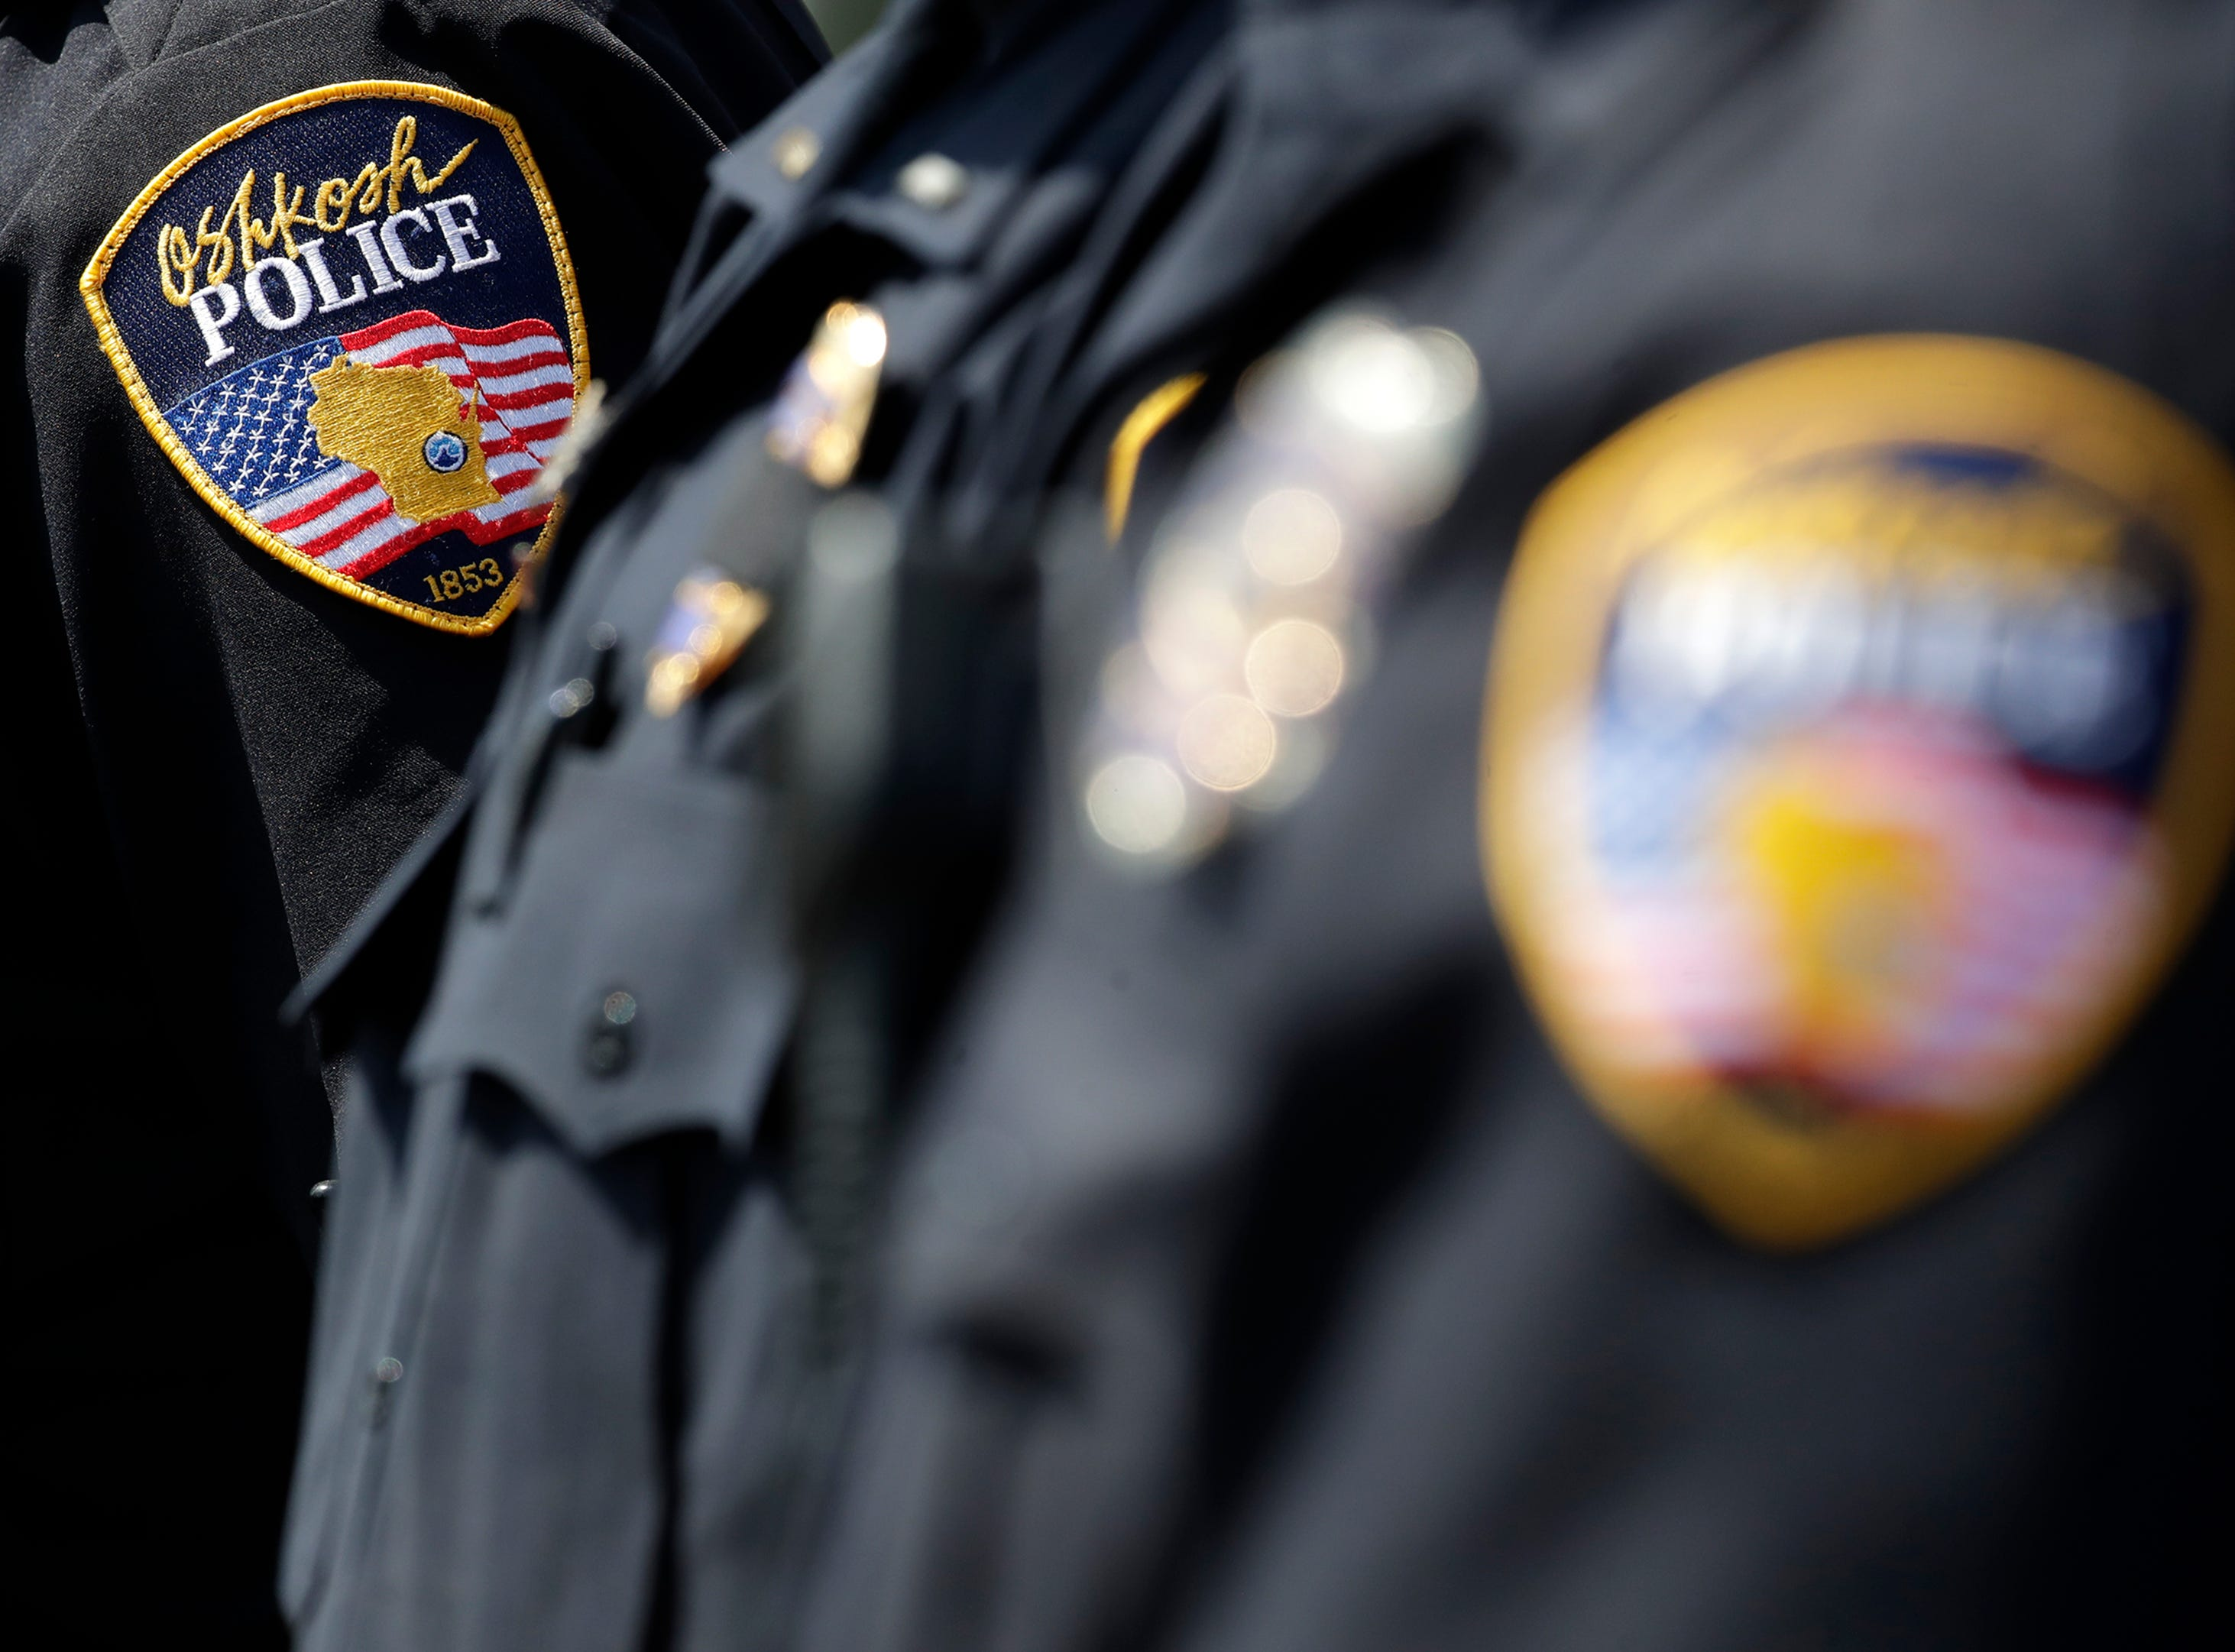 Oshkosh police officers during their Law Enforcement Memorial Ceremony Wednesday, May 15, 2019, at the Oshkosh Police Department in Oshkosh, Wis. Danny Damiani/USA TODAY NETWORK-Wisconsin